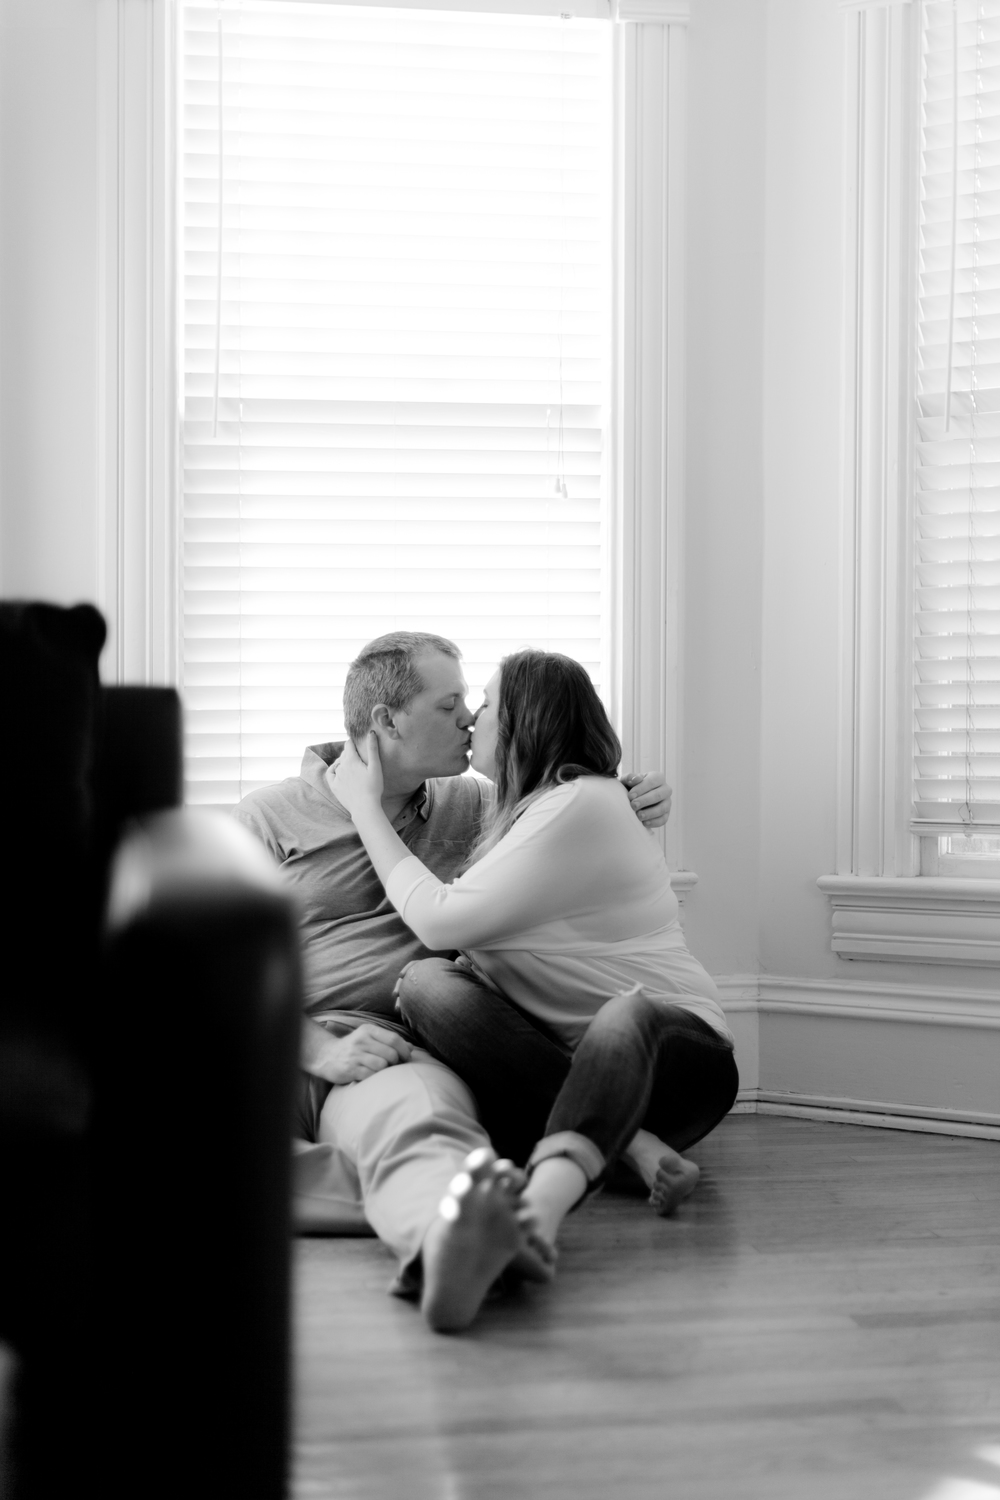 Engagement Photos taken at home always feel soft and intimate.  Photo by Burlap and Blossom.